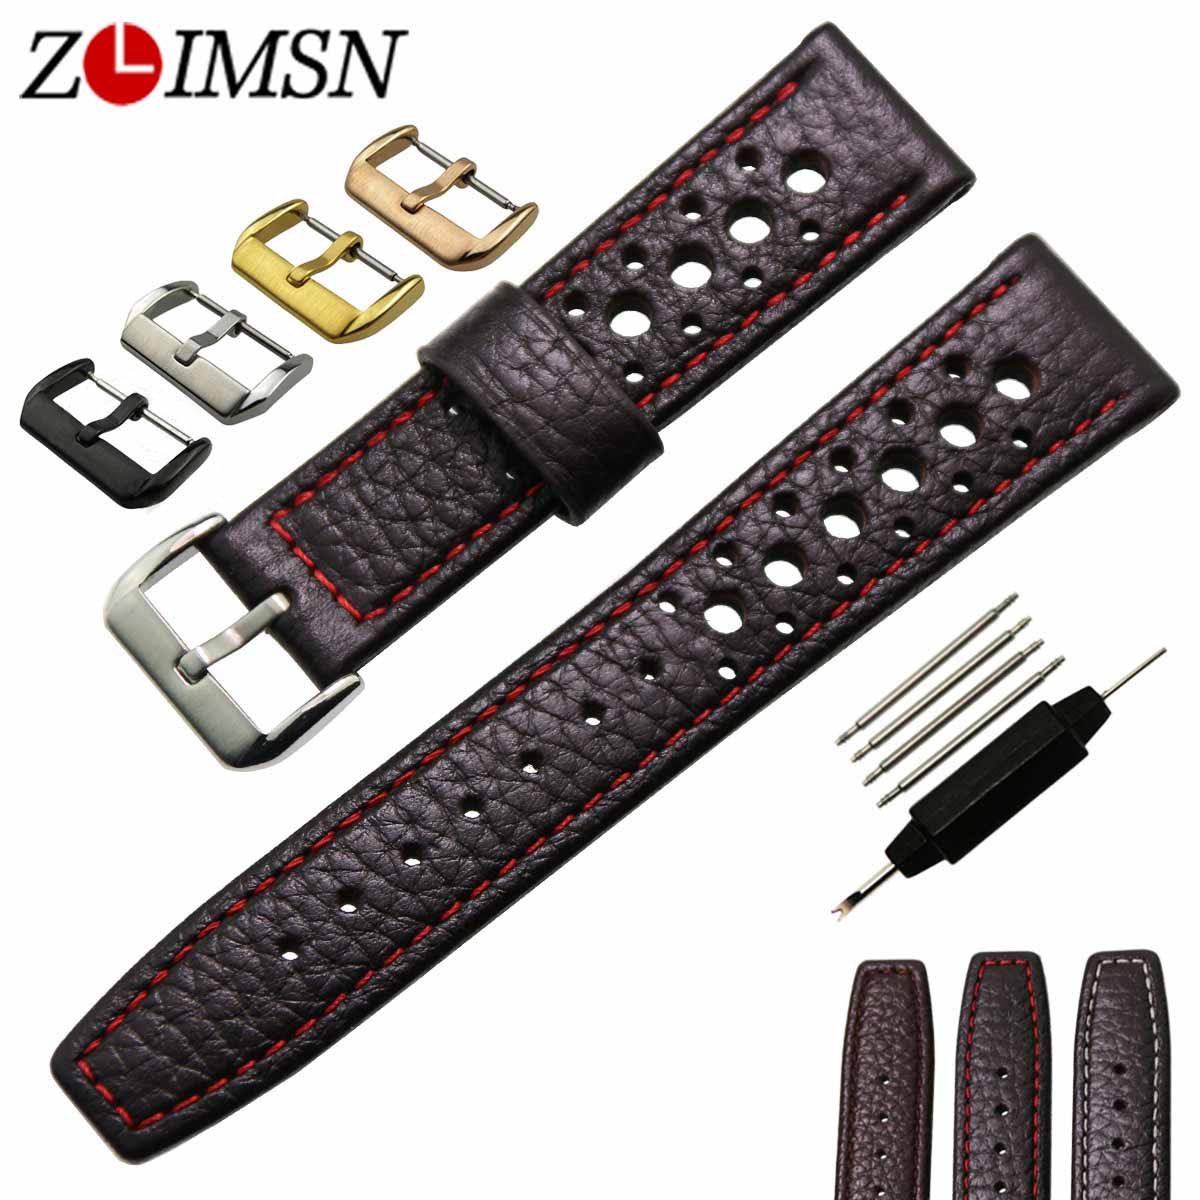 ZLIMSN Mens Genuine Leather Watchbands Watch Band Bands Dark Brown Strap Brand Belt Stainless Steel Buckle 20mm 22mm zlimsn high quality thick genuine leather watchbands 20 22 24 26mm brown watch strap 316l brushed silver stainless steel buckle